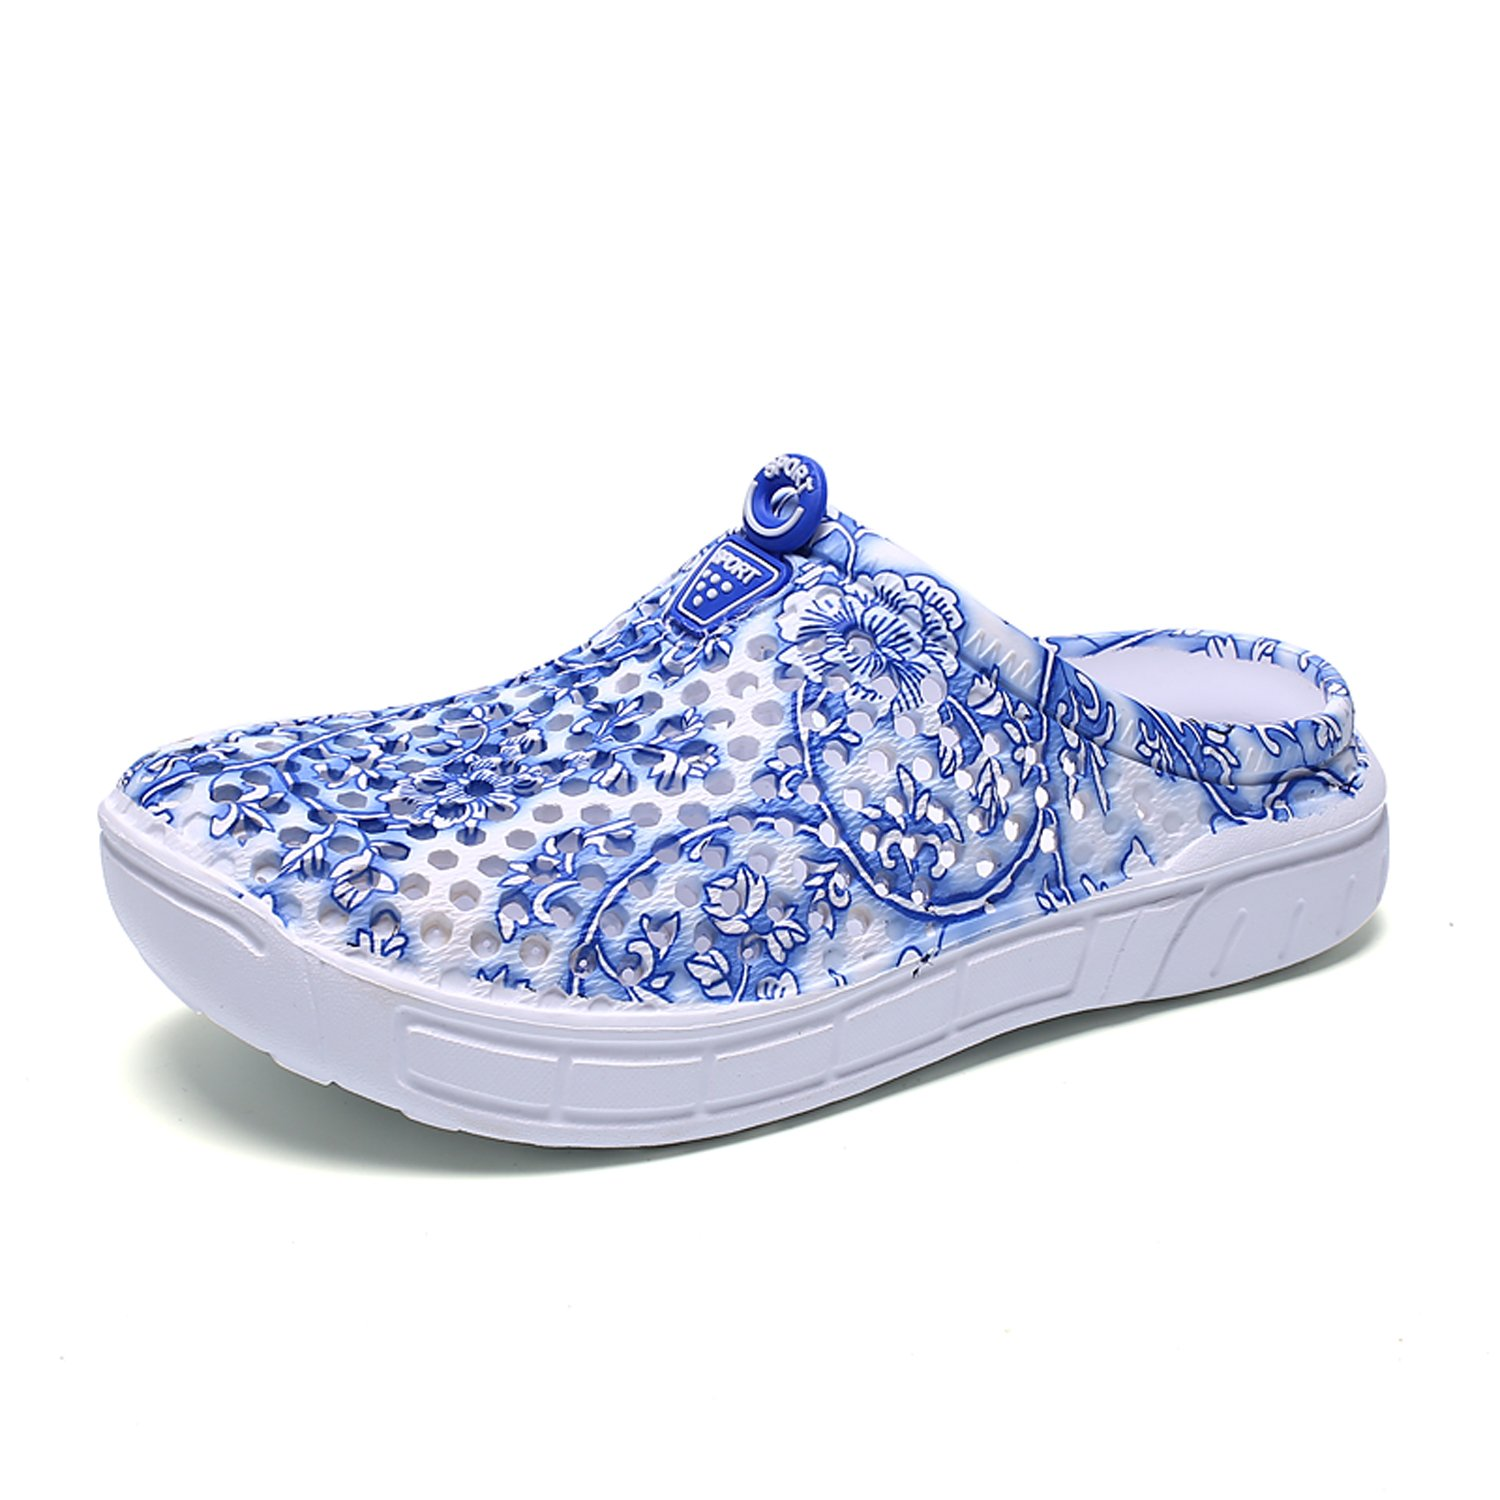 BODON Womens Summer Breathable Mesh Slippers Lightweight Mesh Clog Quick Drying Garden Shoes Footwear Anti-Slip Shoes Blue Flower 39